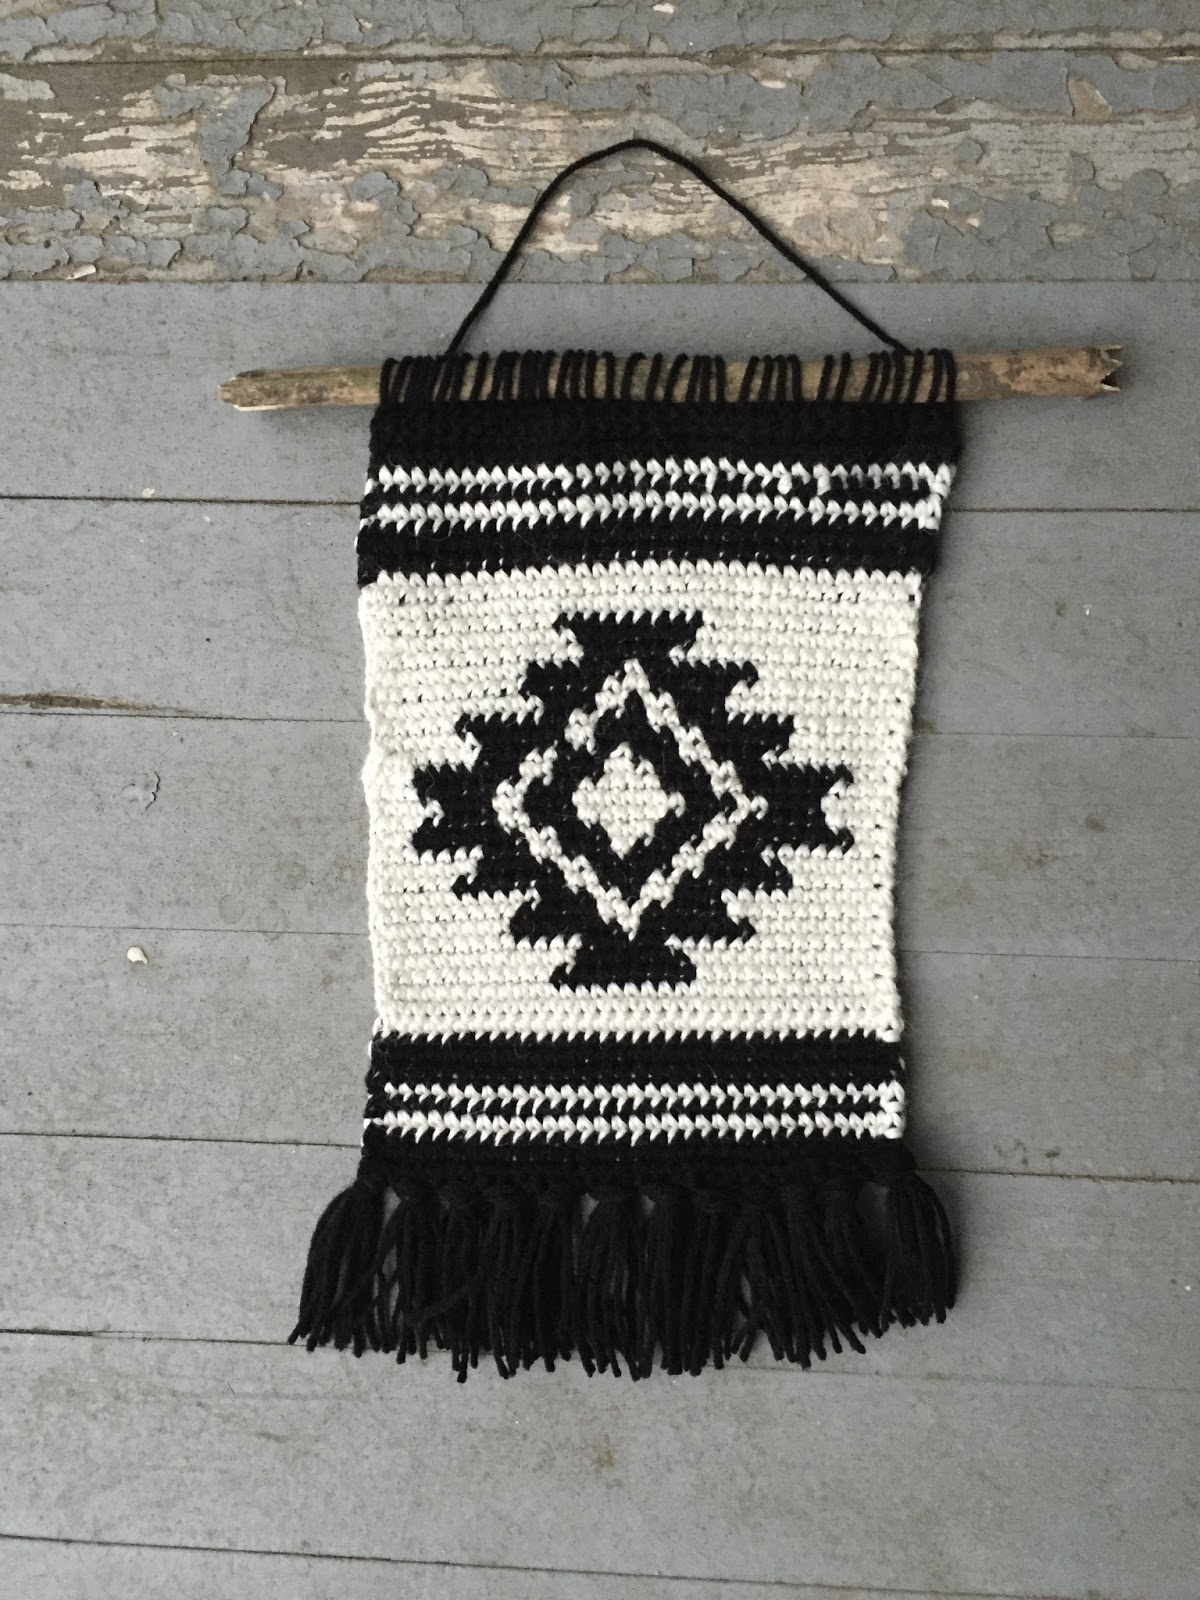 Shirley And Eadie: Crochet Wall Hanging Tutorial throughout Crochet Wall Art (Image 18 of 20)